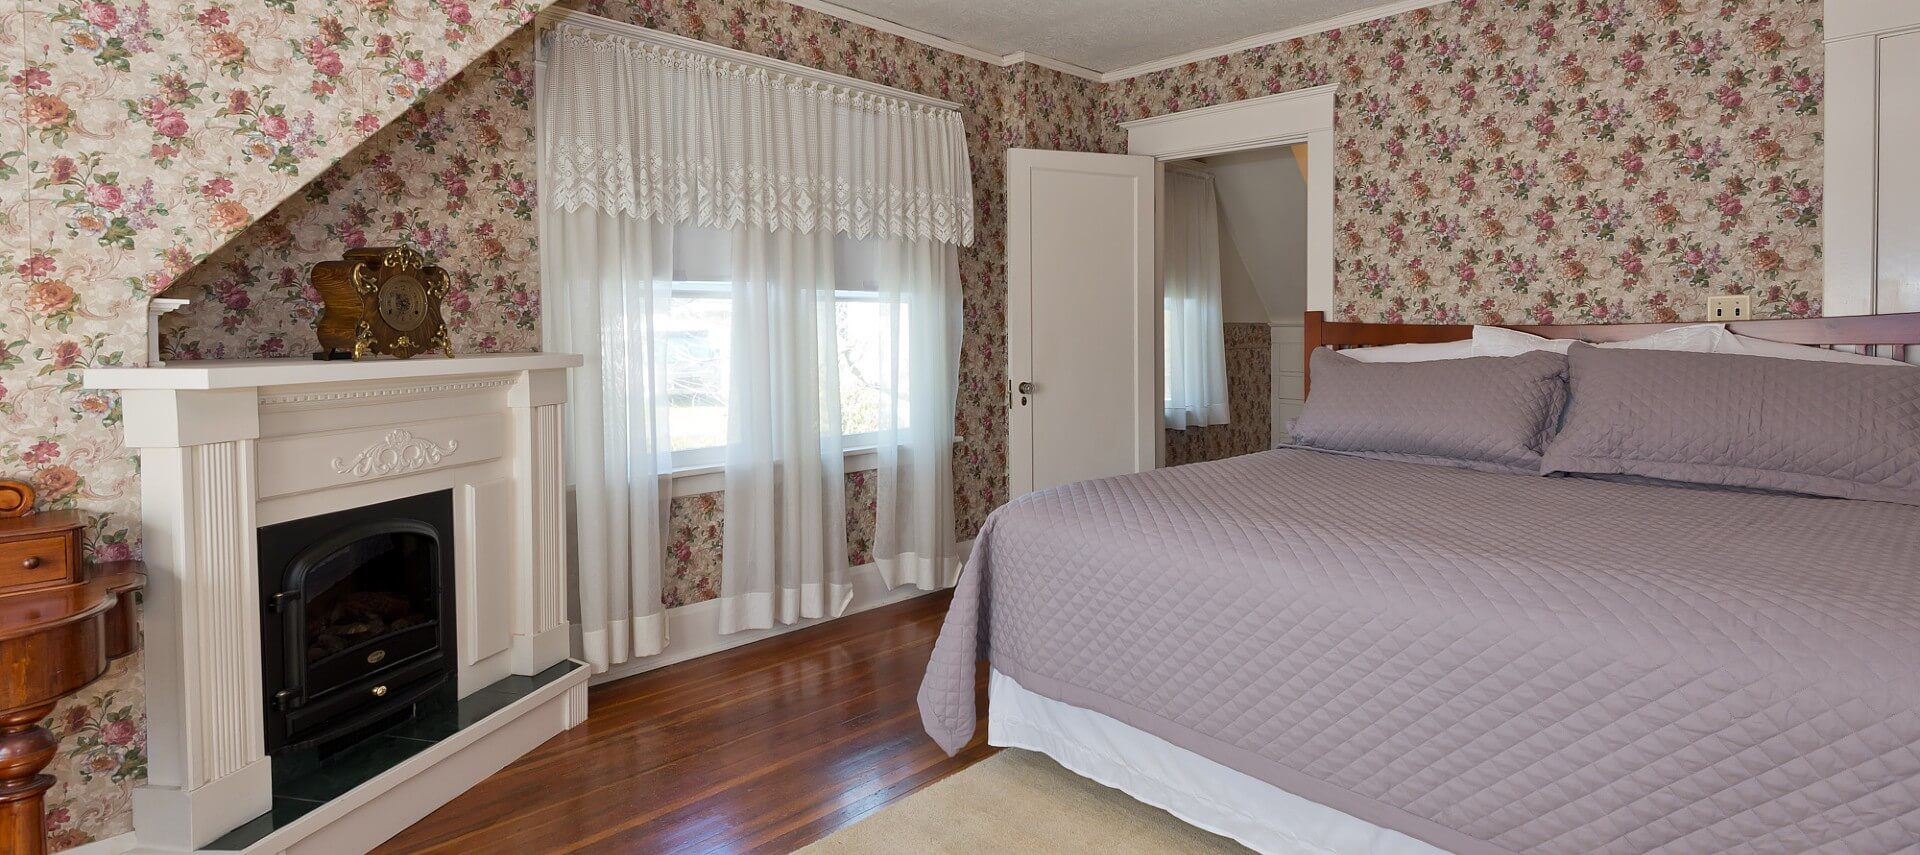 Large guest room with hardwood floors, wallpapered walls, fireplace and king bed with lilac quilt